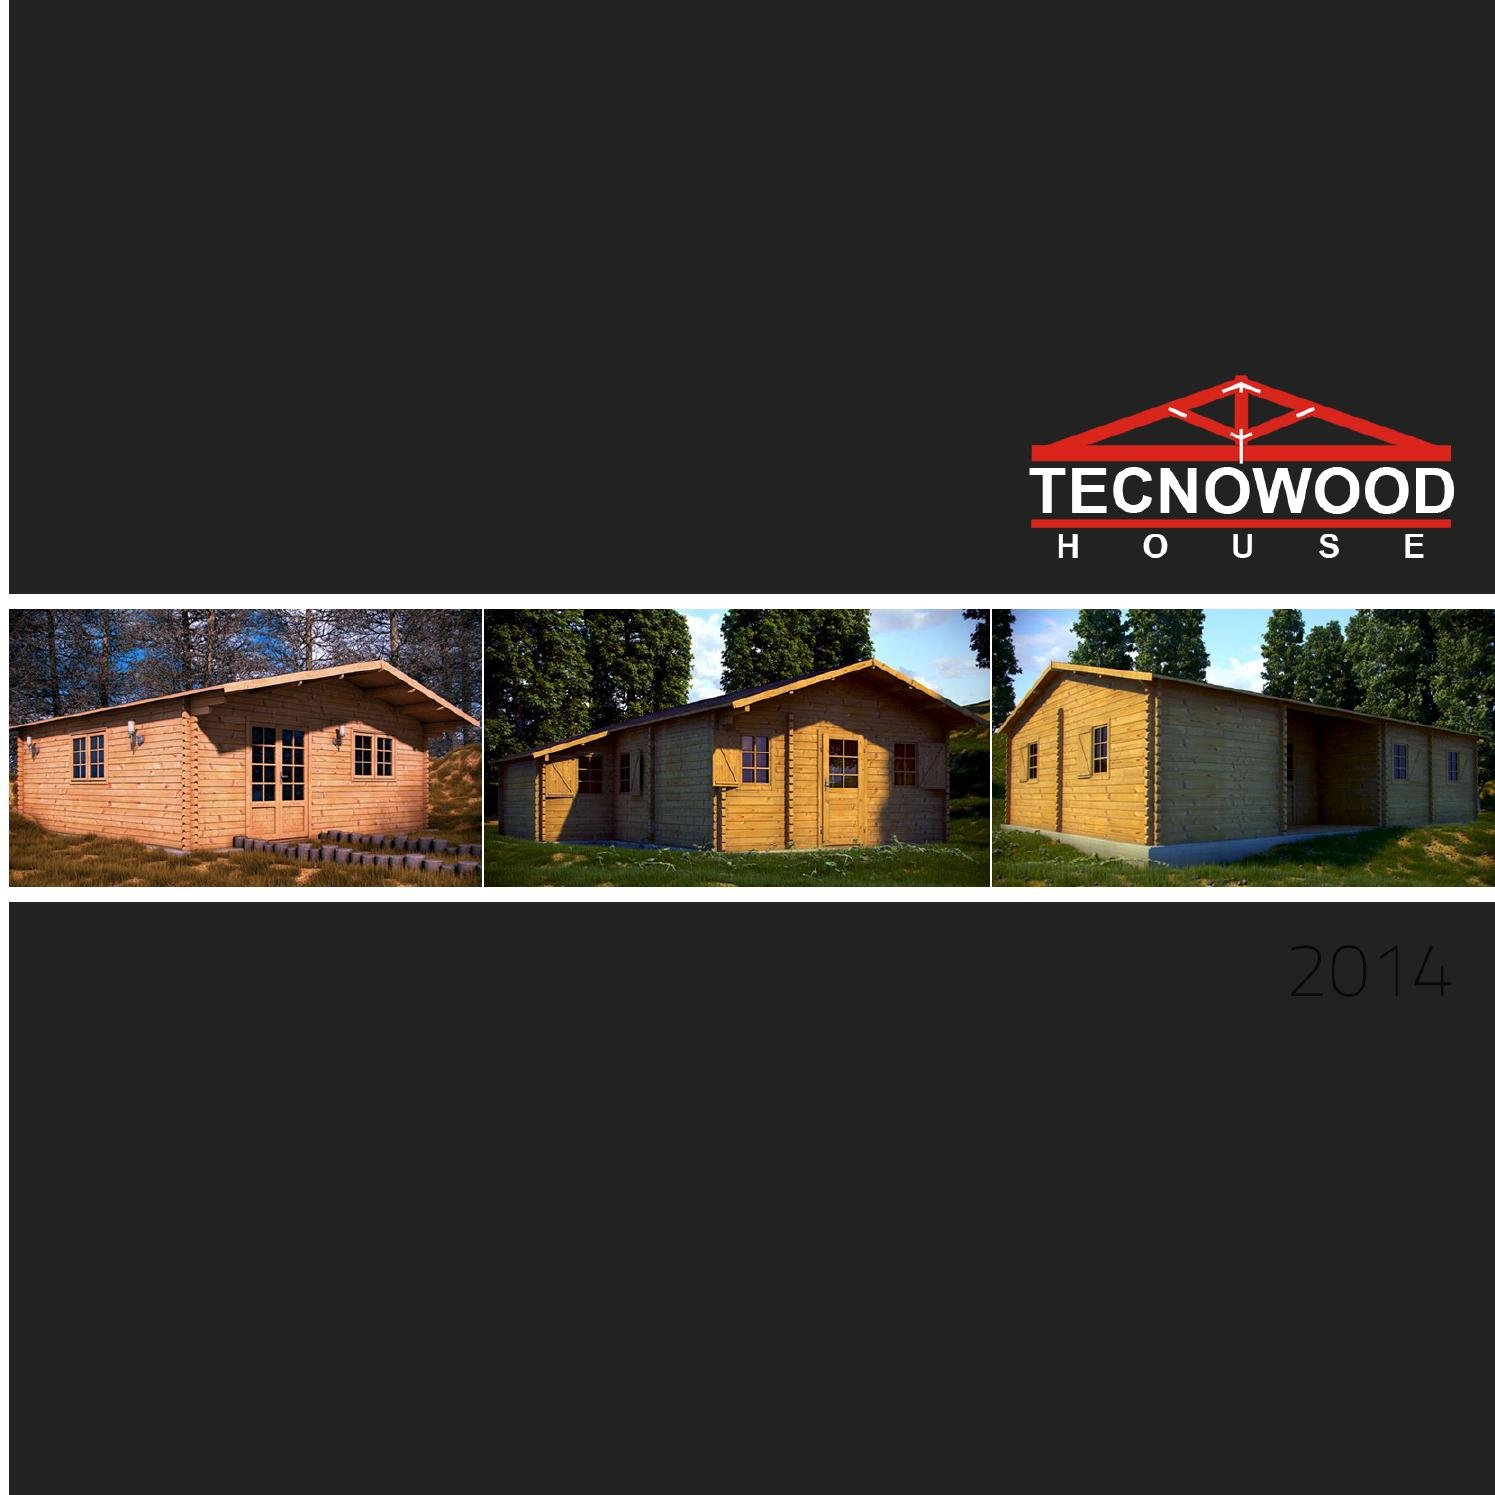 Tecnowoodhouse Casette Bungalow E Cottage By Tecnowood Issuu